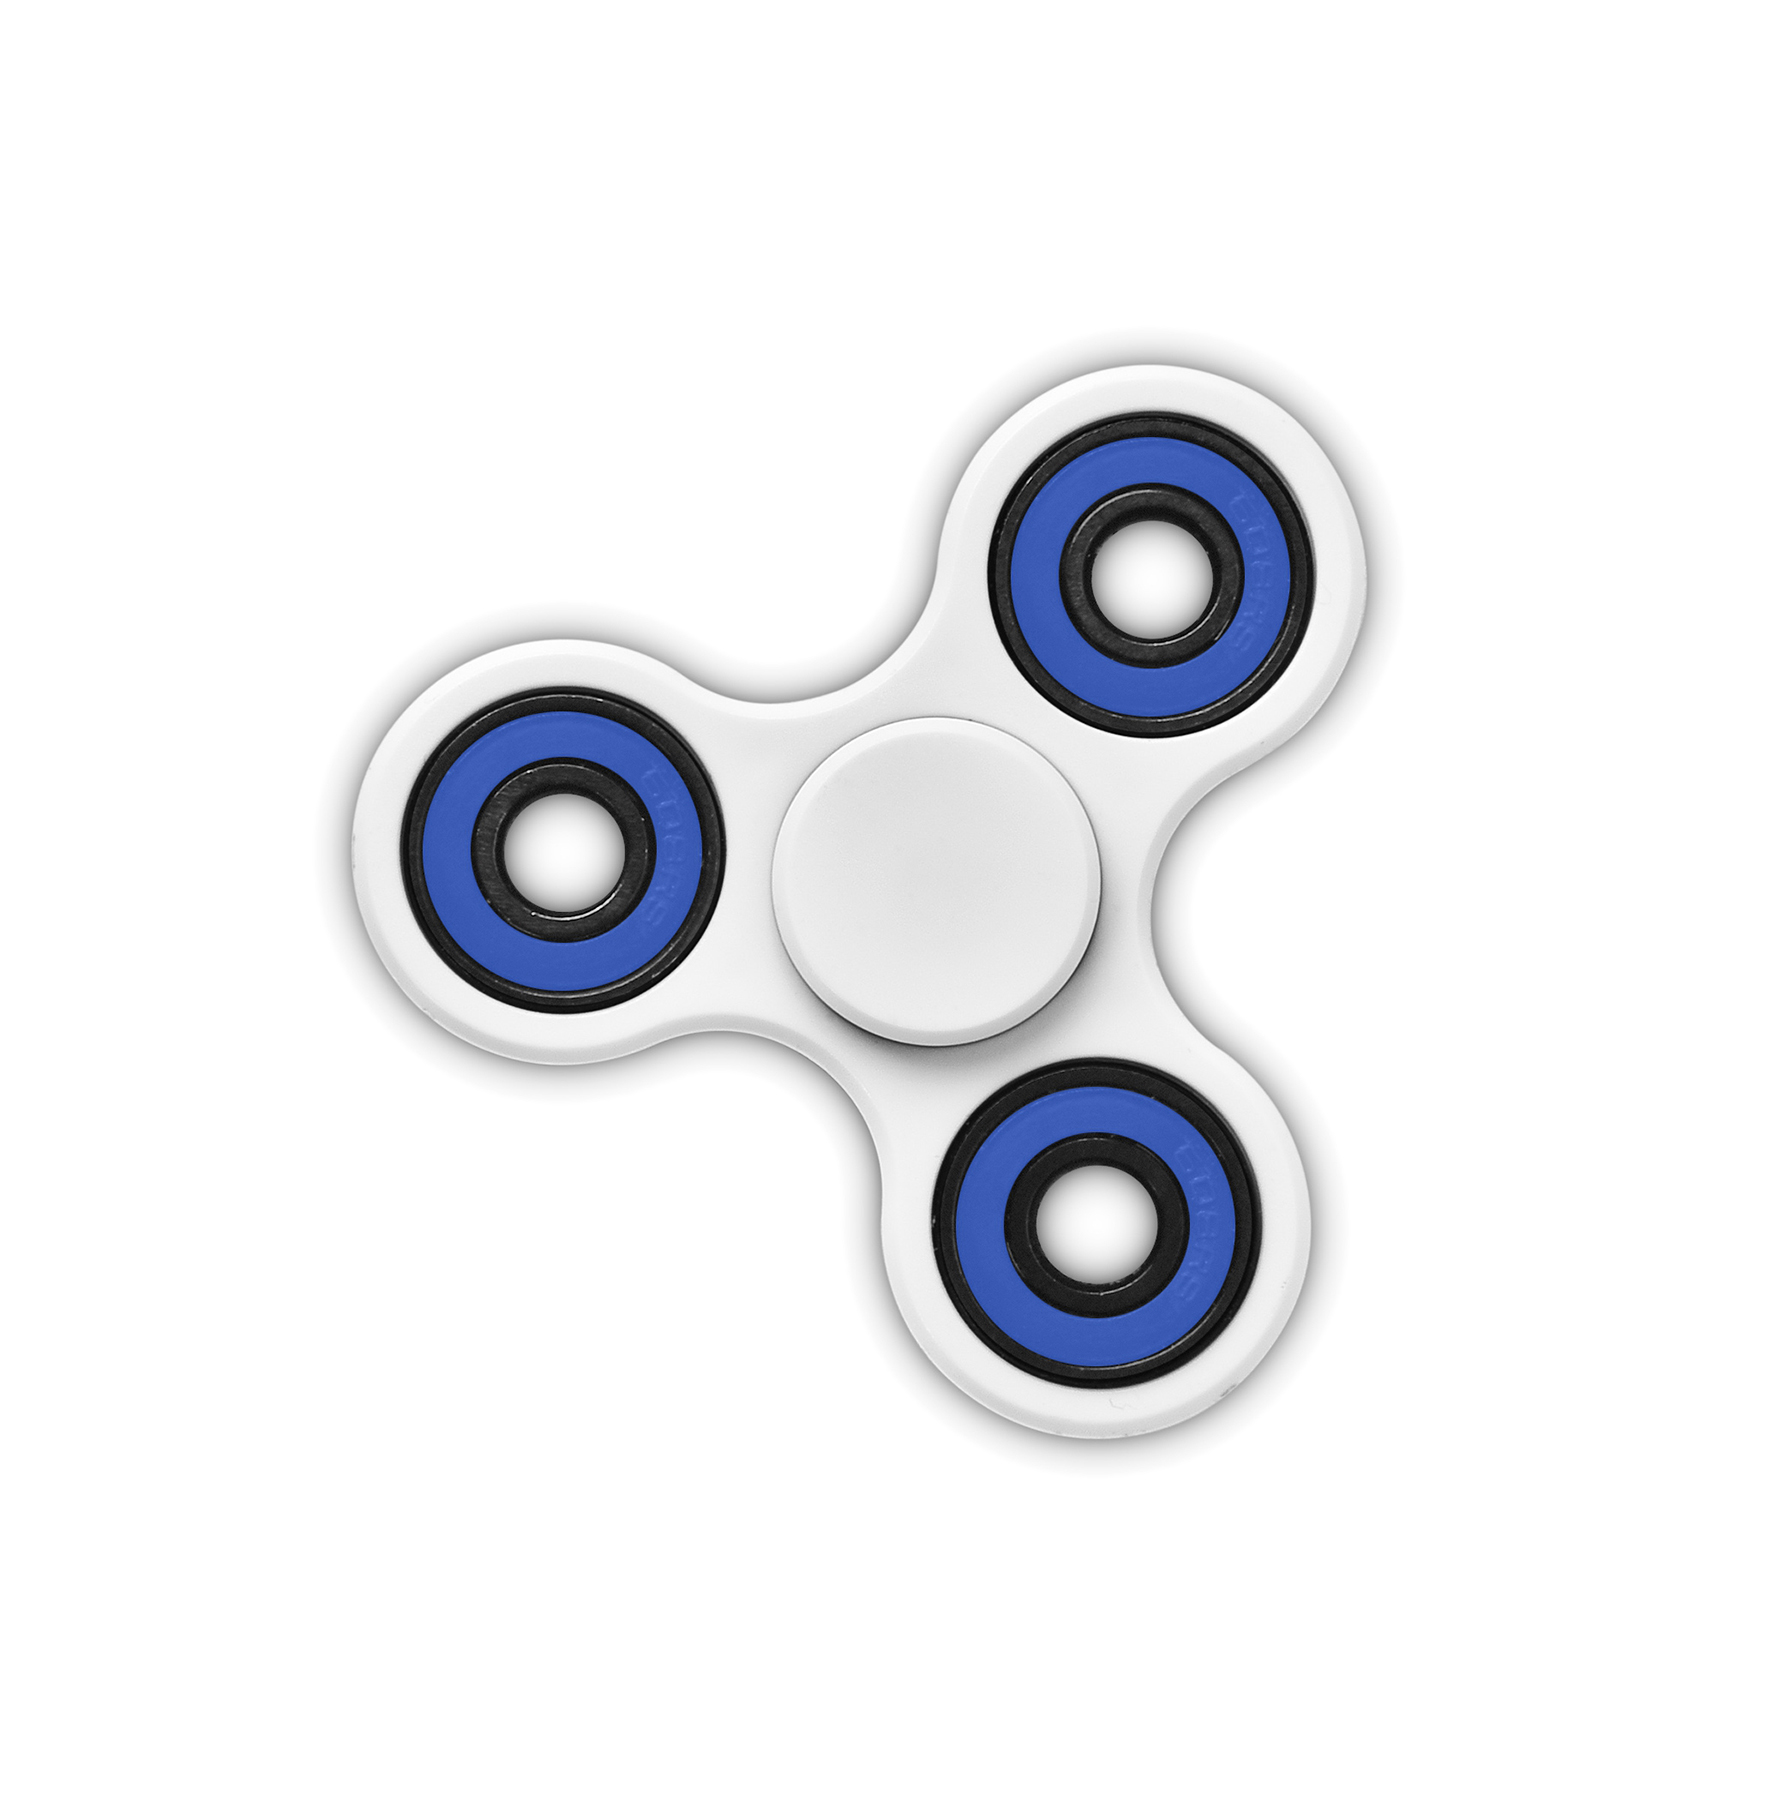 Where to Buy Fidget Spinners Before They Sell Out